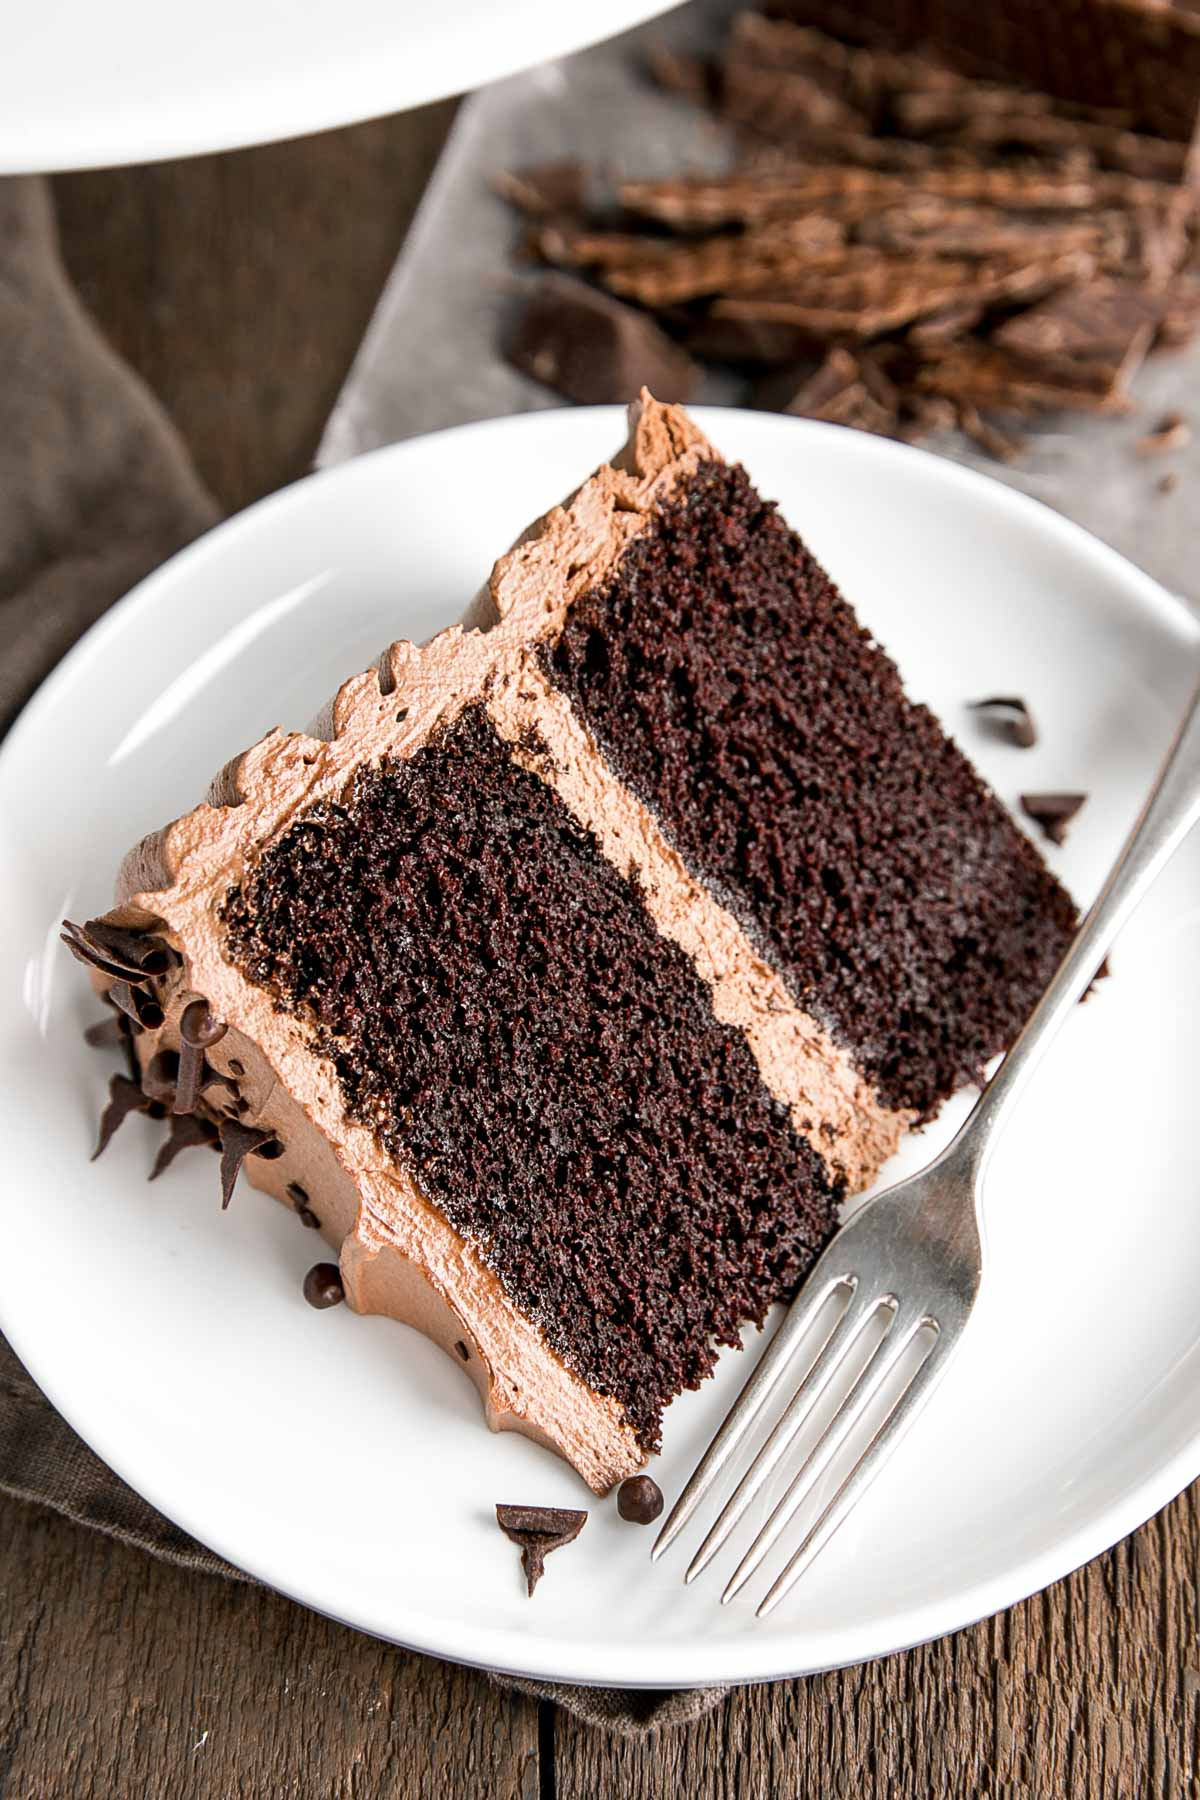 Slice of chocolate cake with chocolate buttercream